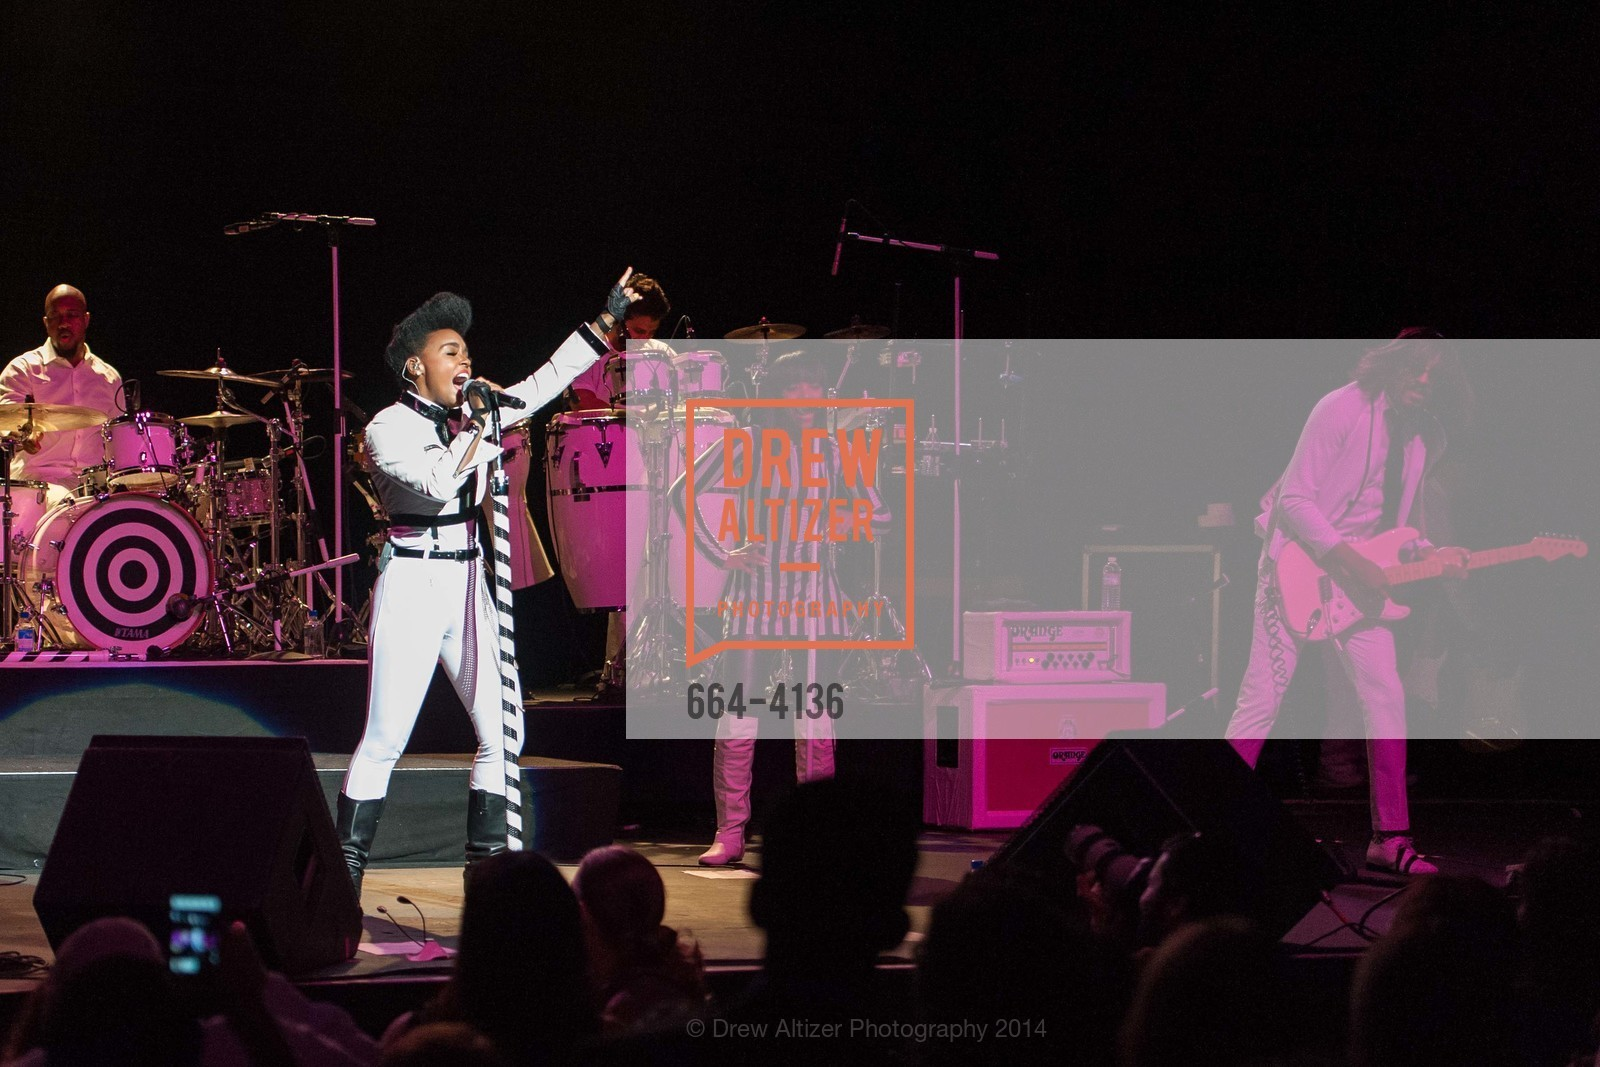 Performance By Janelle Monae, Photo #664-4136